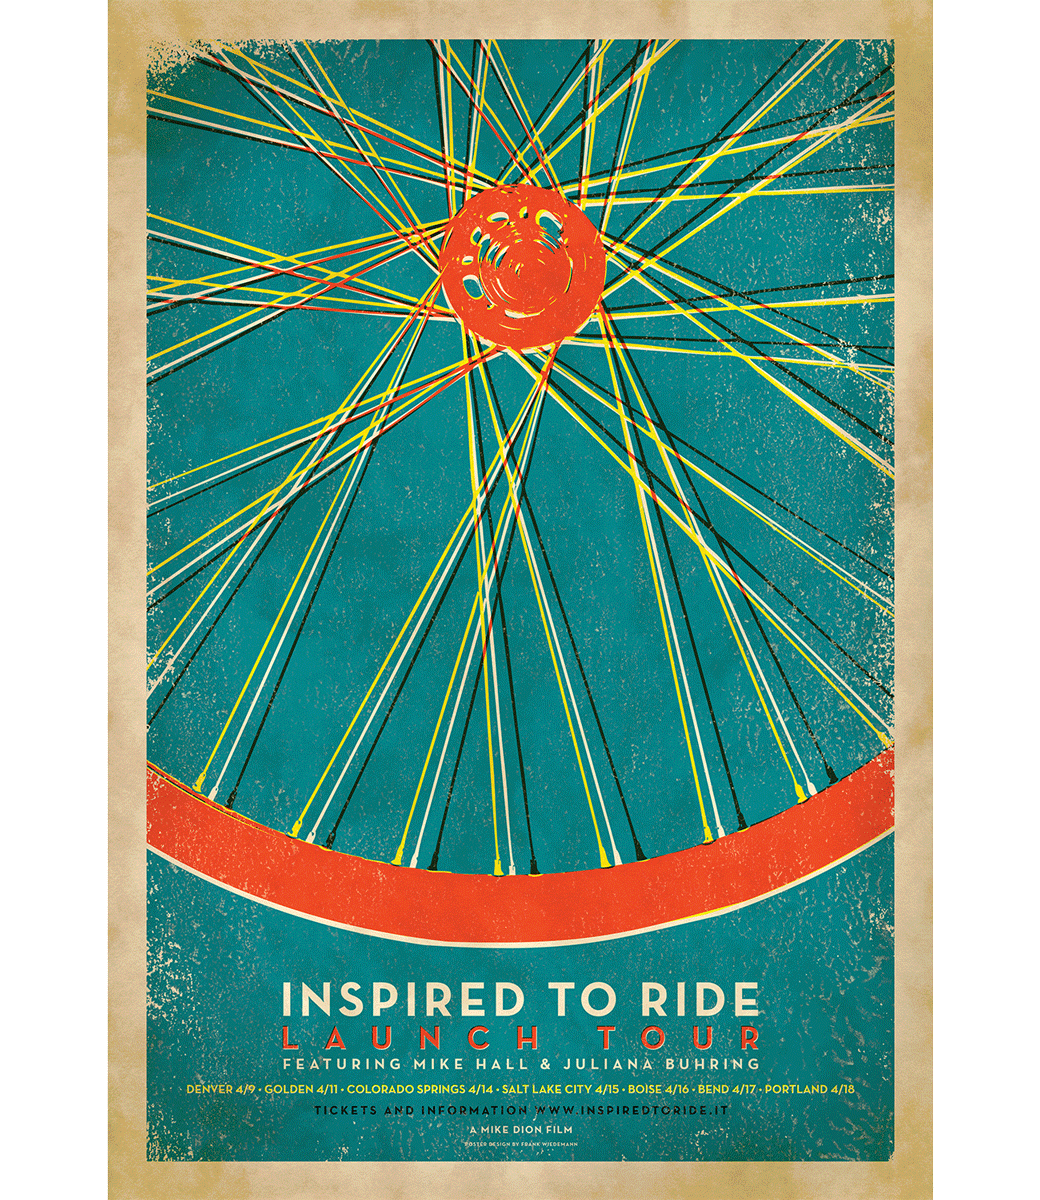 Inspired to Ride Launch Tour Poster